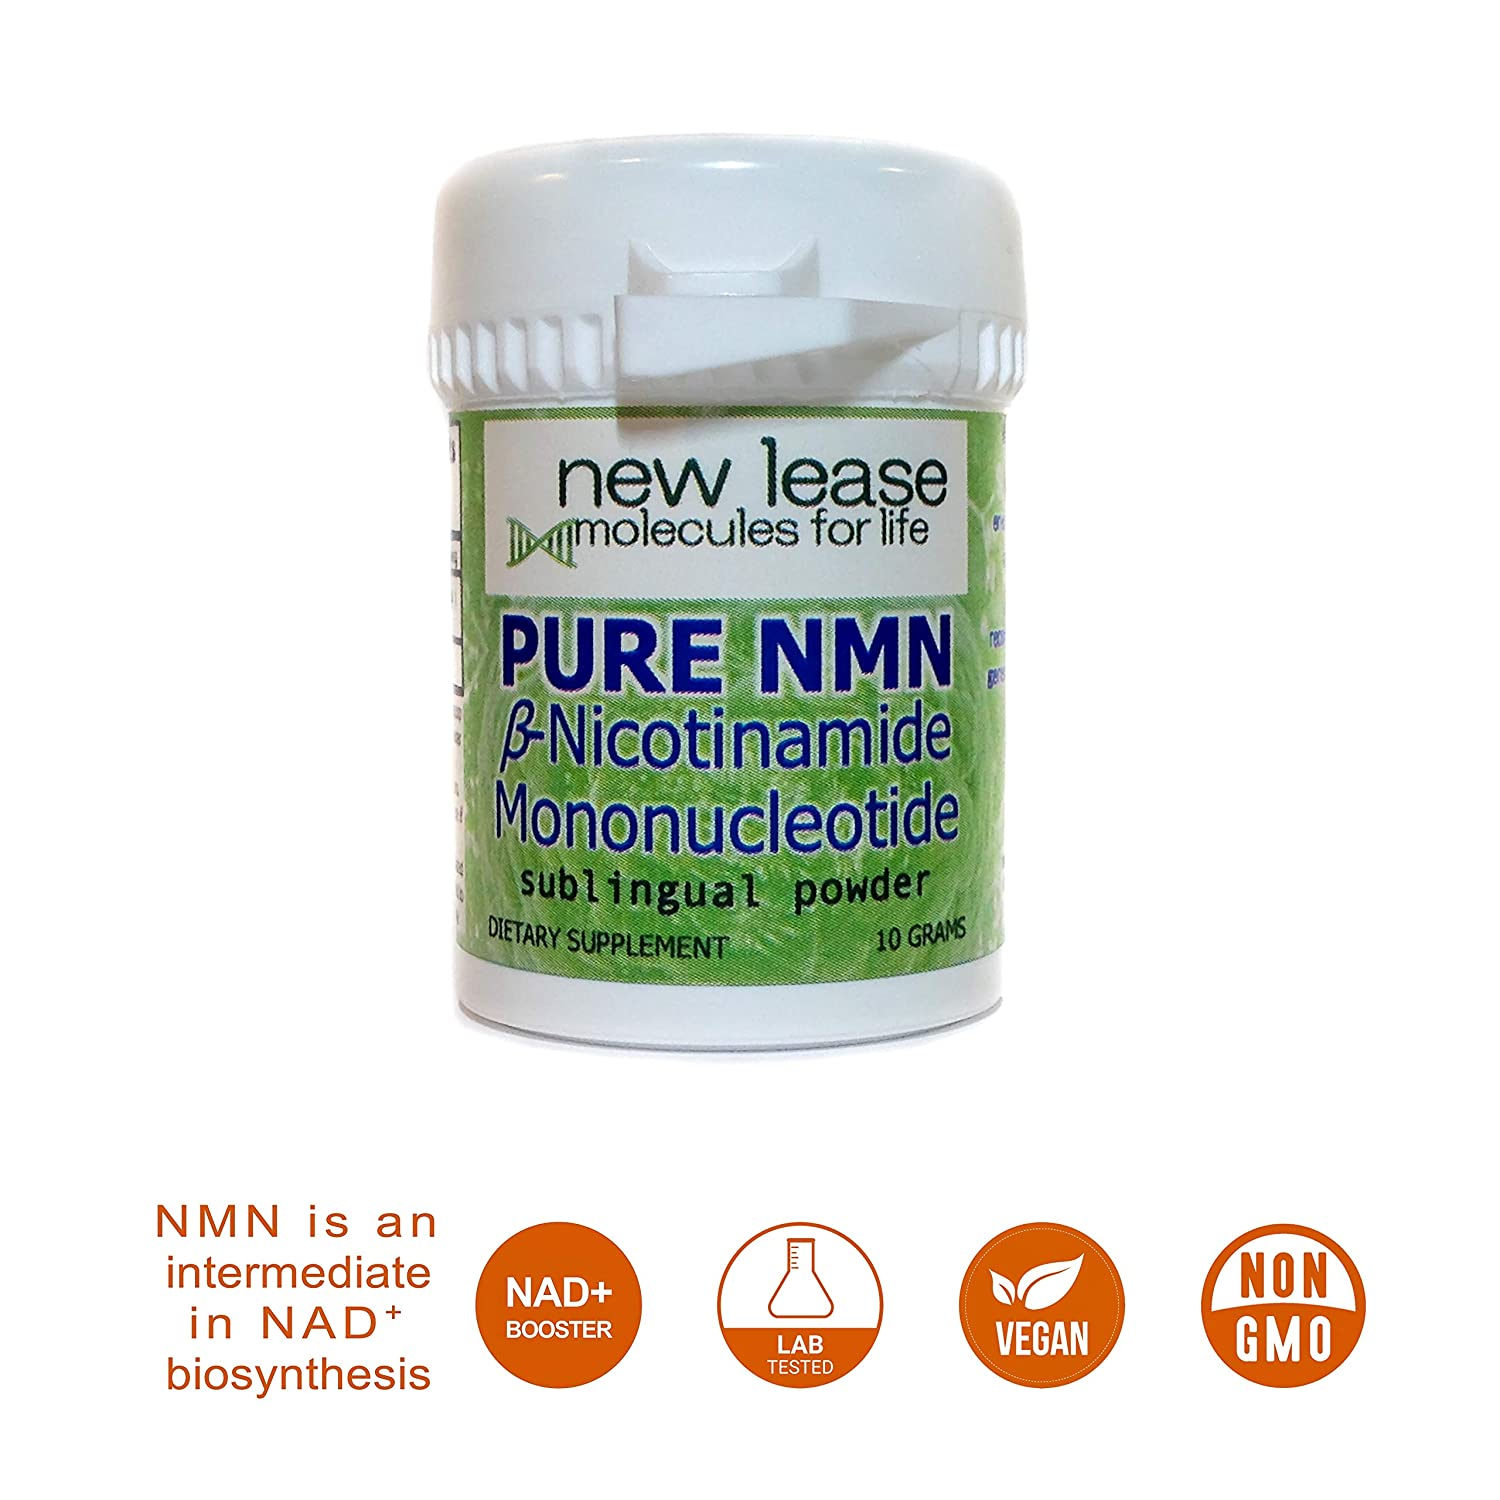 Pure NMN - Nicotinamide Mononucleotide - Sublingual Powder - Purity Above  99% - 10 Grams